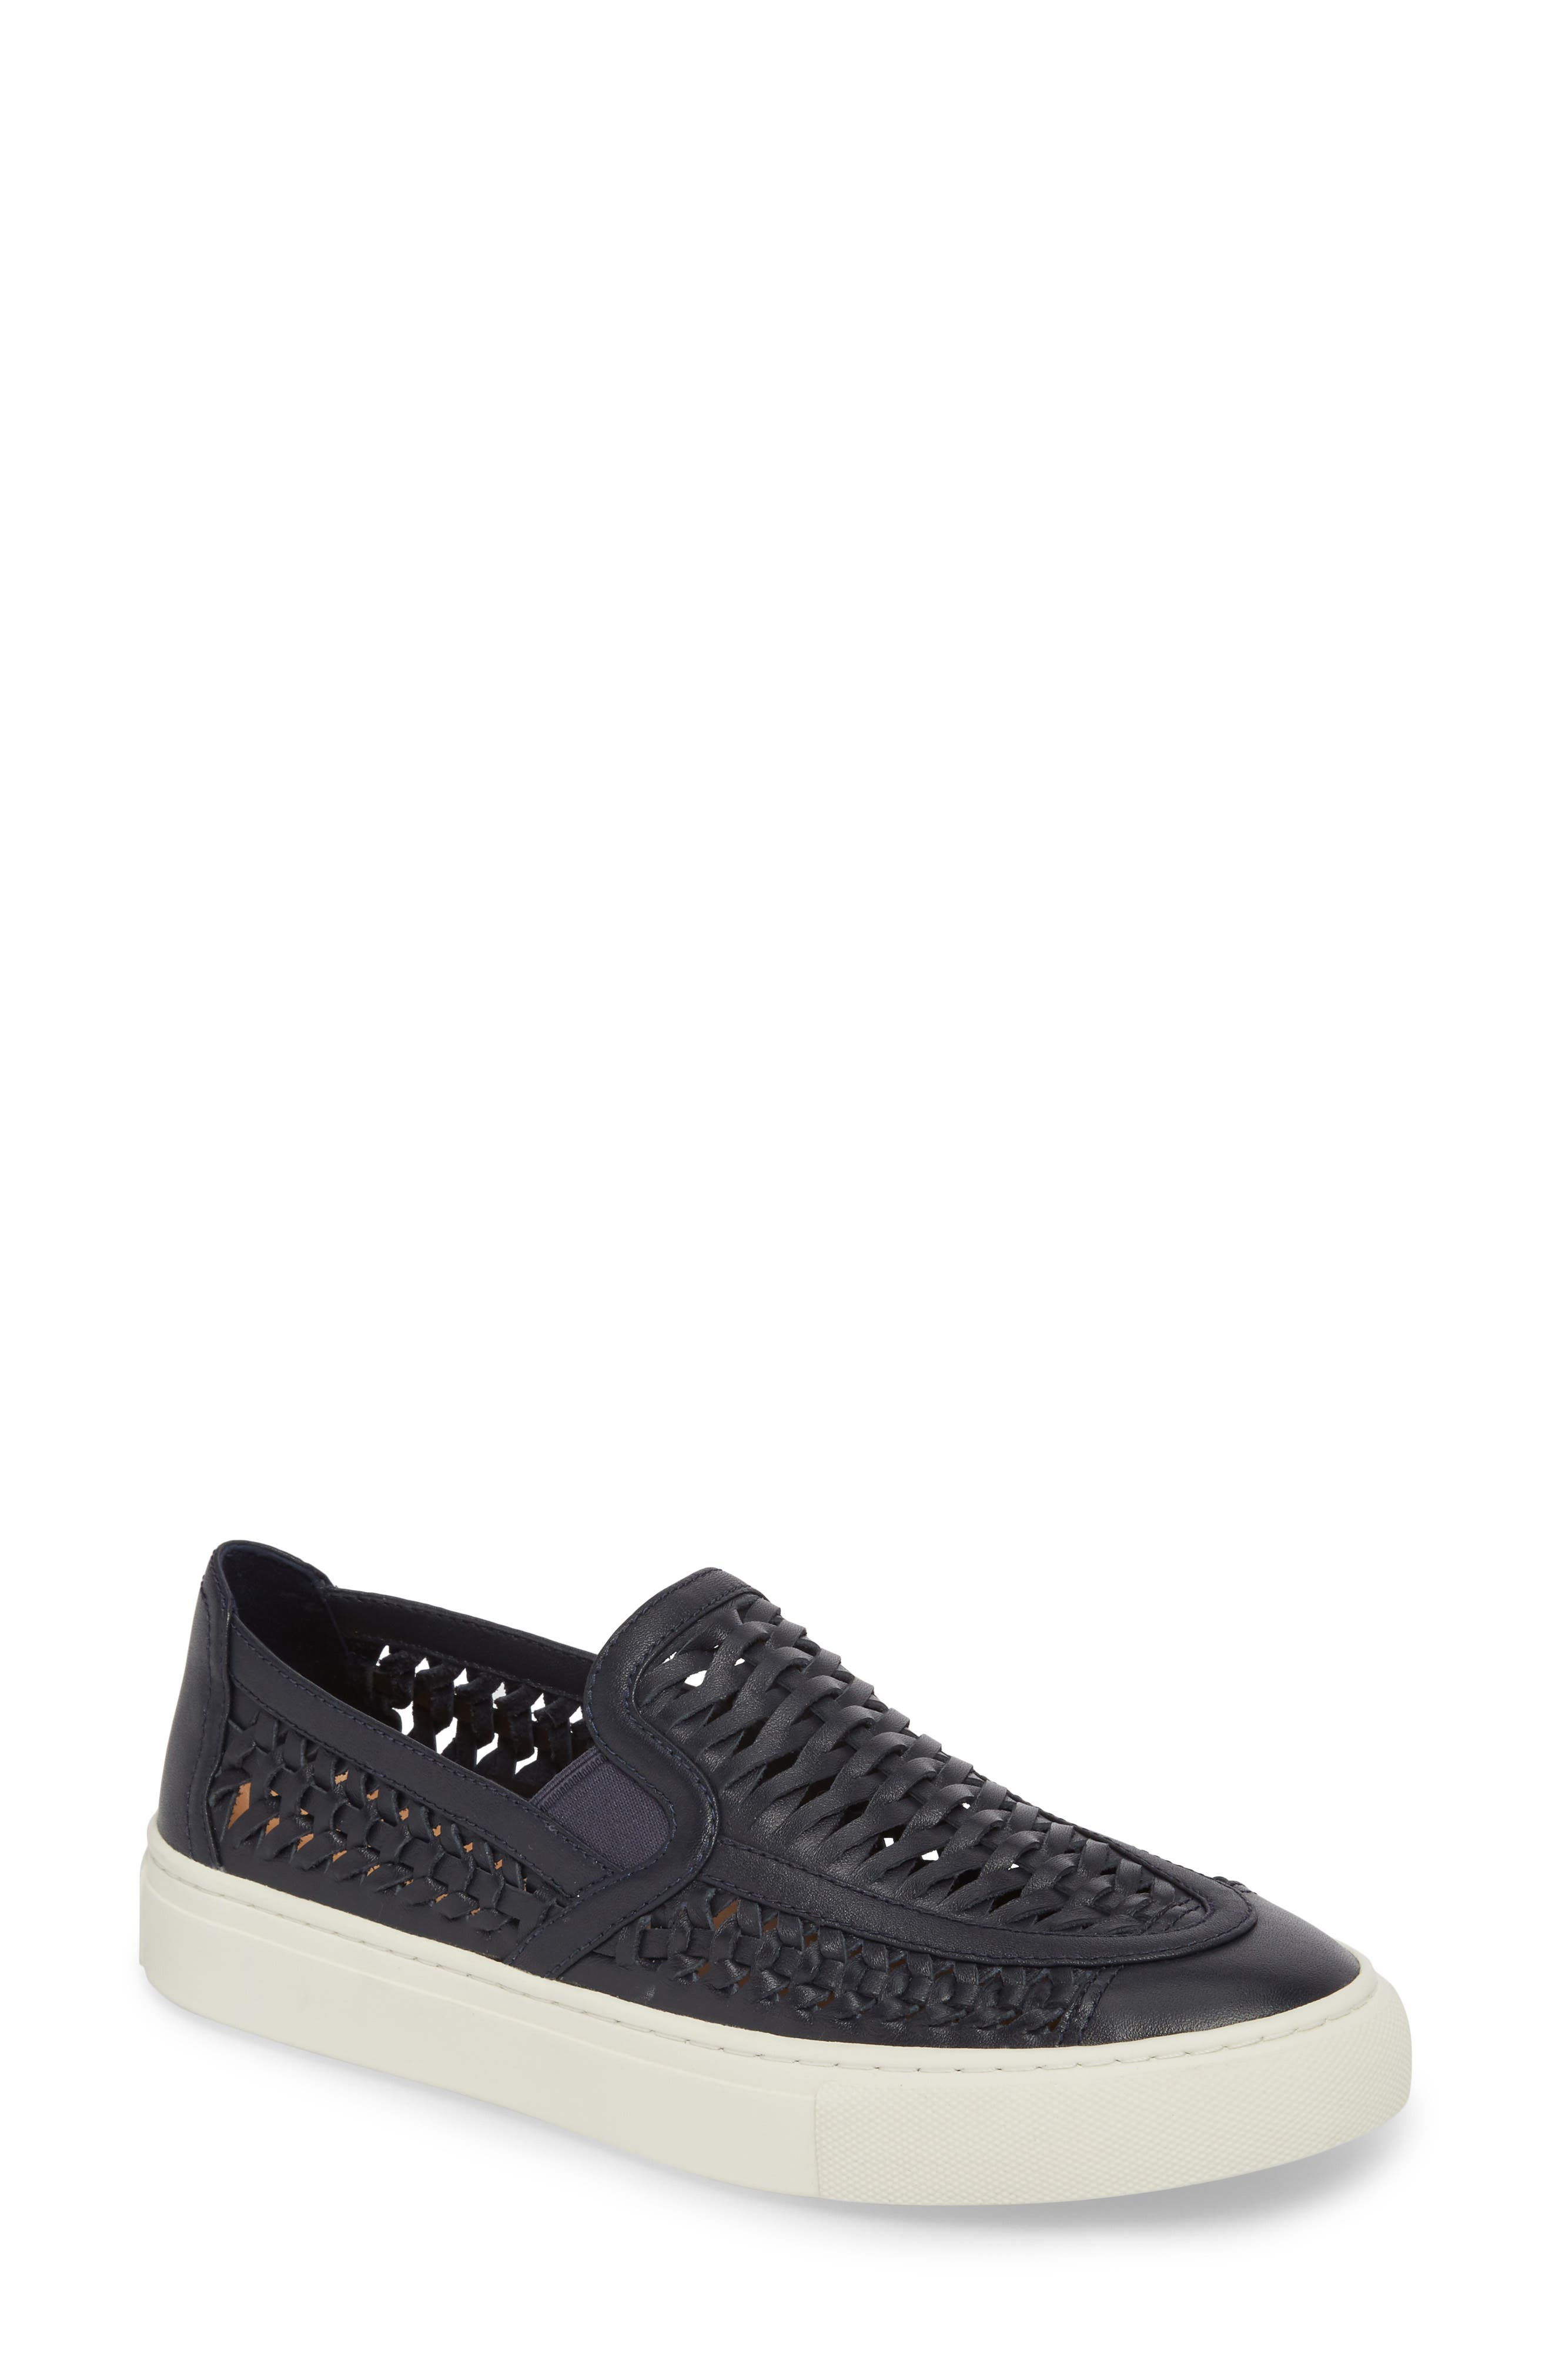 Tory Burch Huarache 2 Slip-On Sneaker (Women)